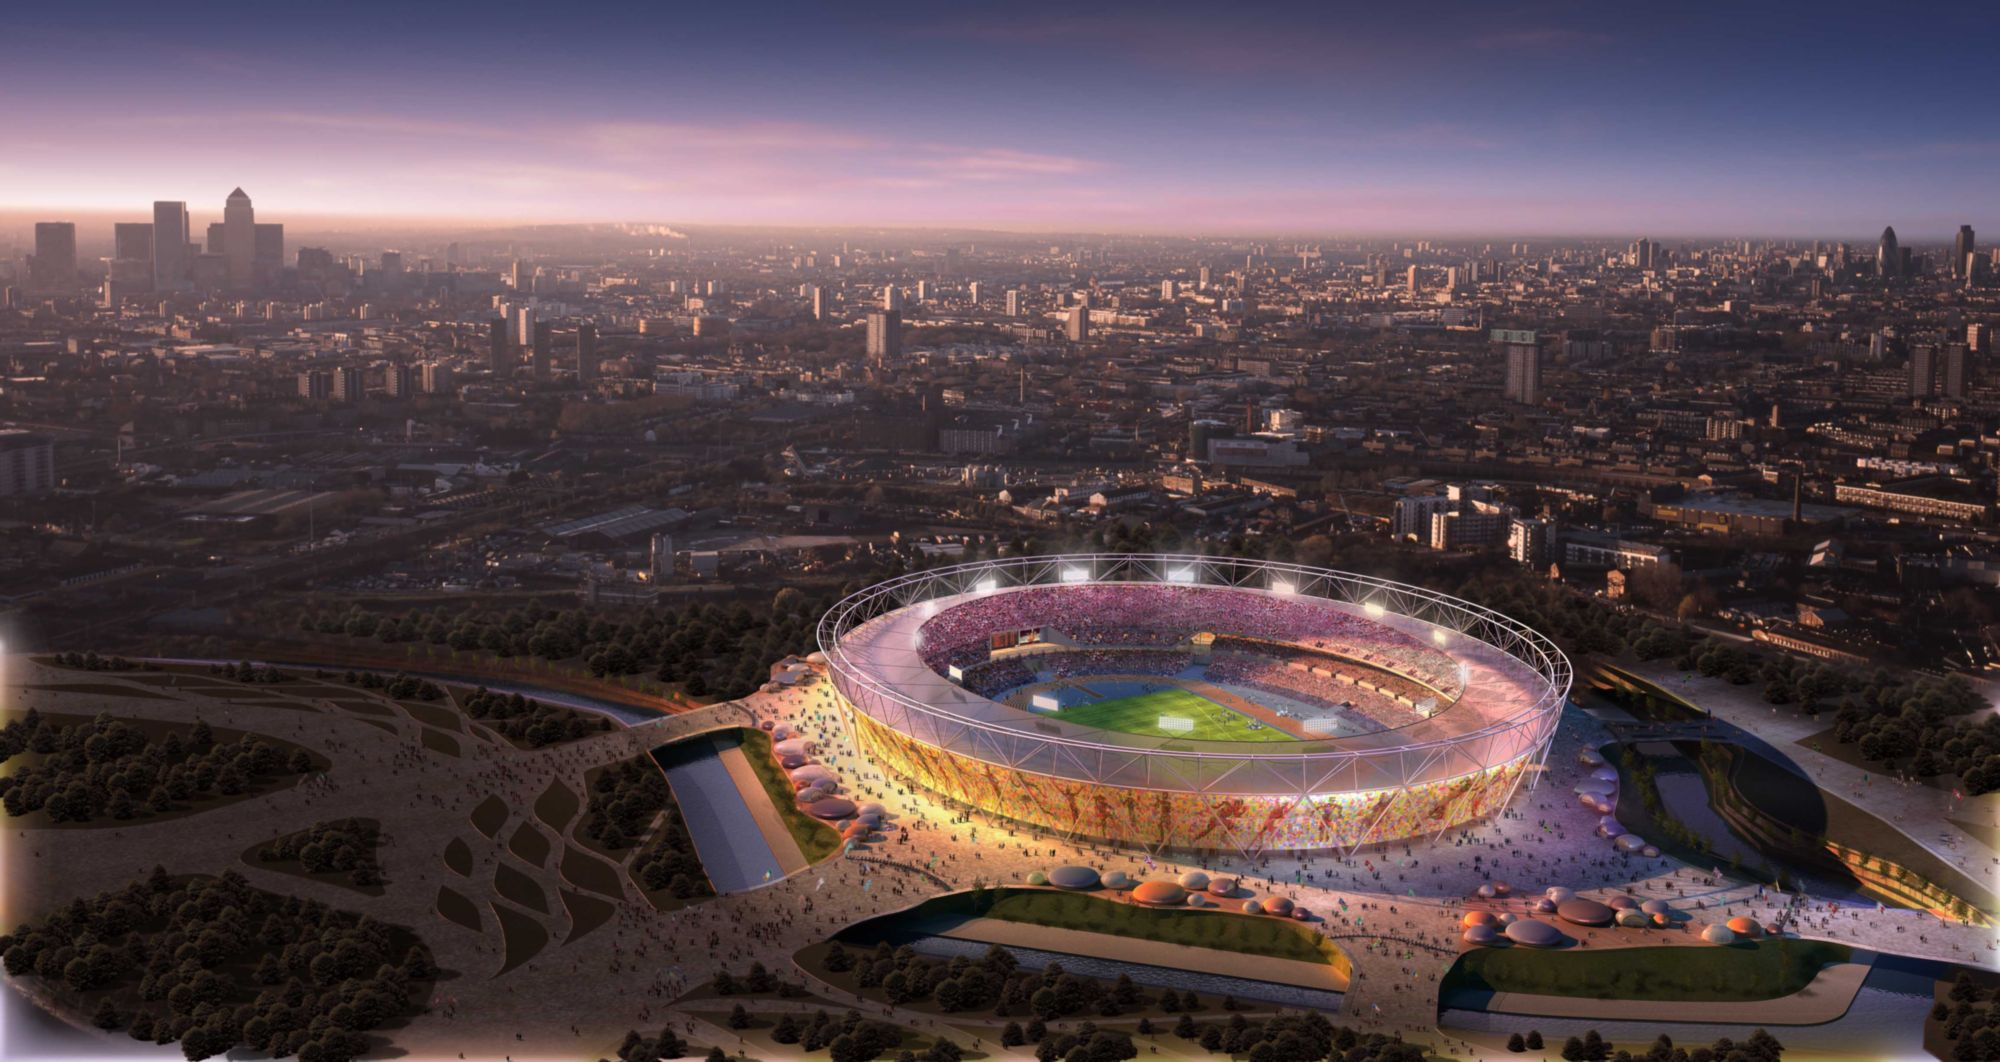 Alex Huot: London 2012 will be the first Social Media Olympics